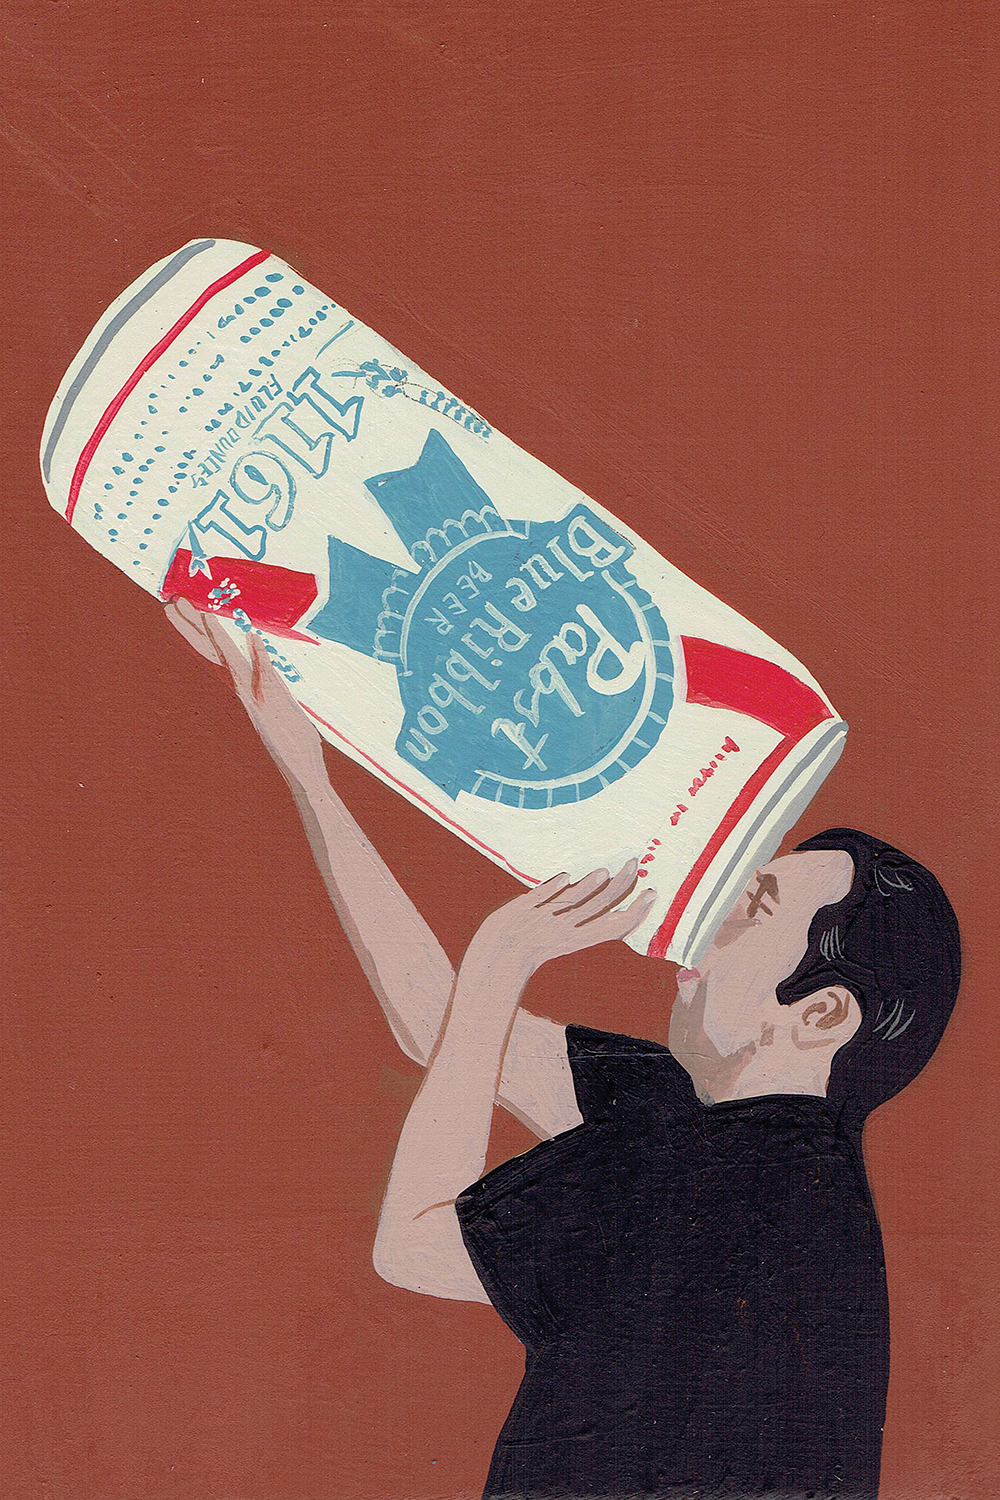 Image of a male with black hair wearing a black shirt drinking out of a giant can of Pabst Blue Ribbon